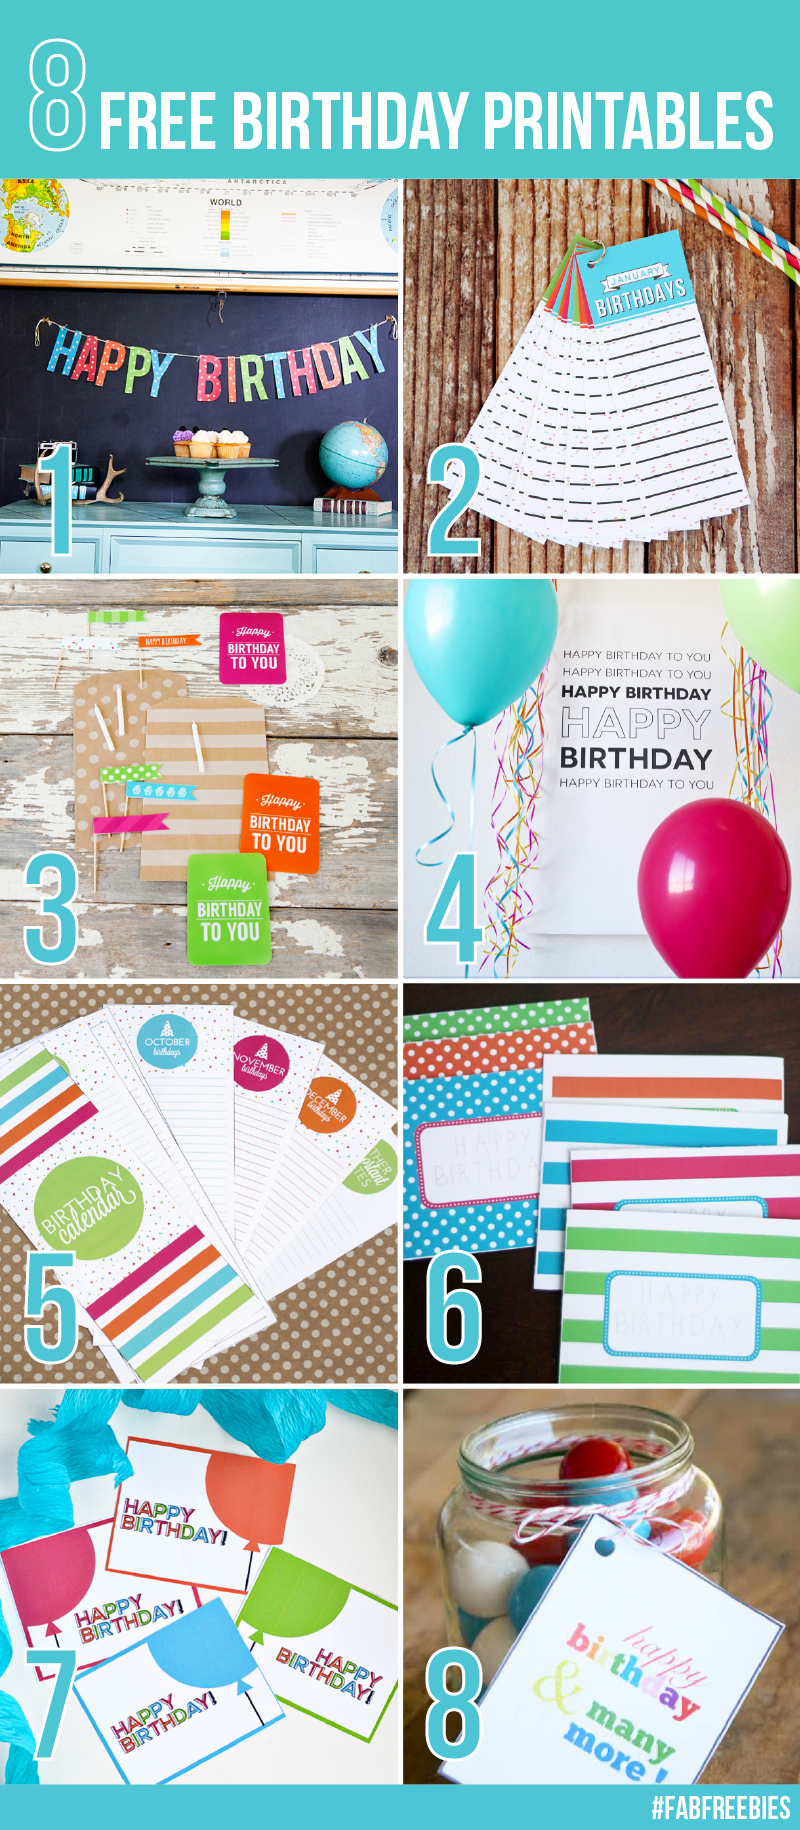 Birthday-Free-Printables-Roundup